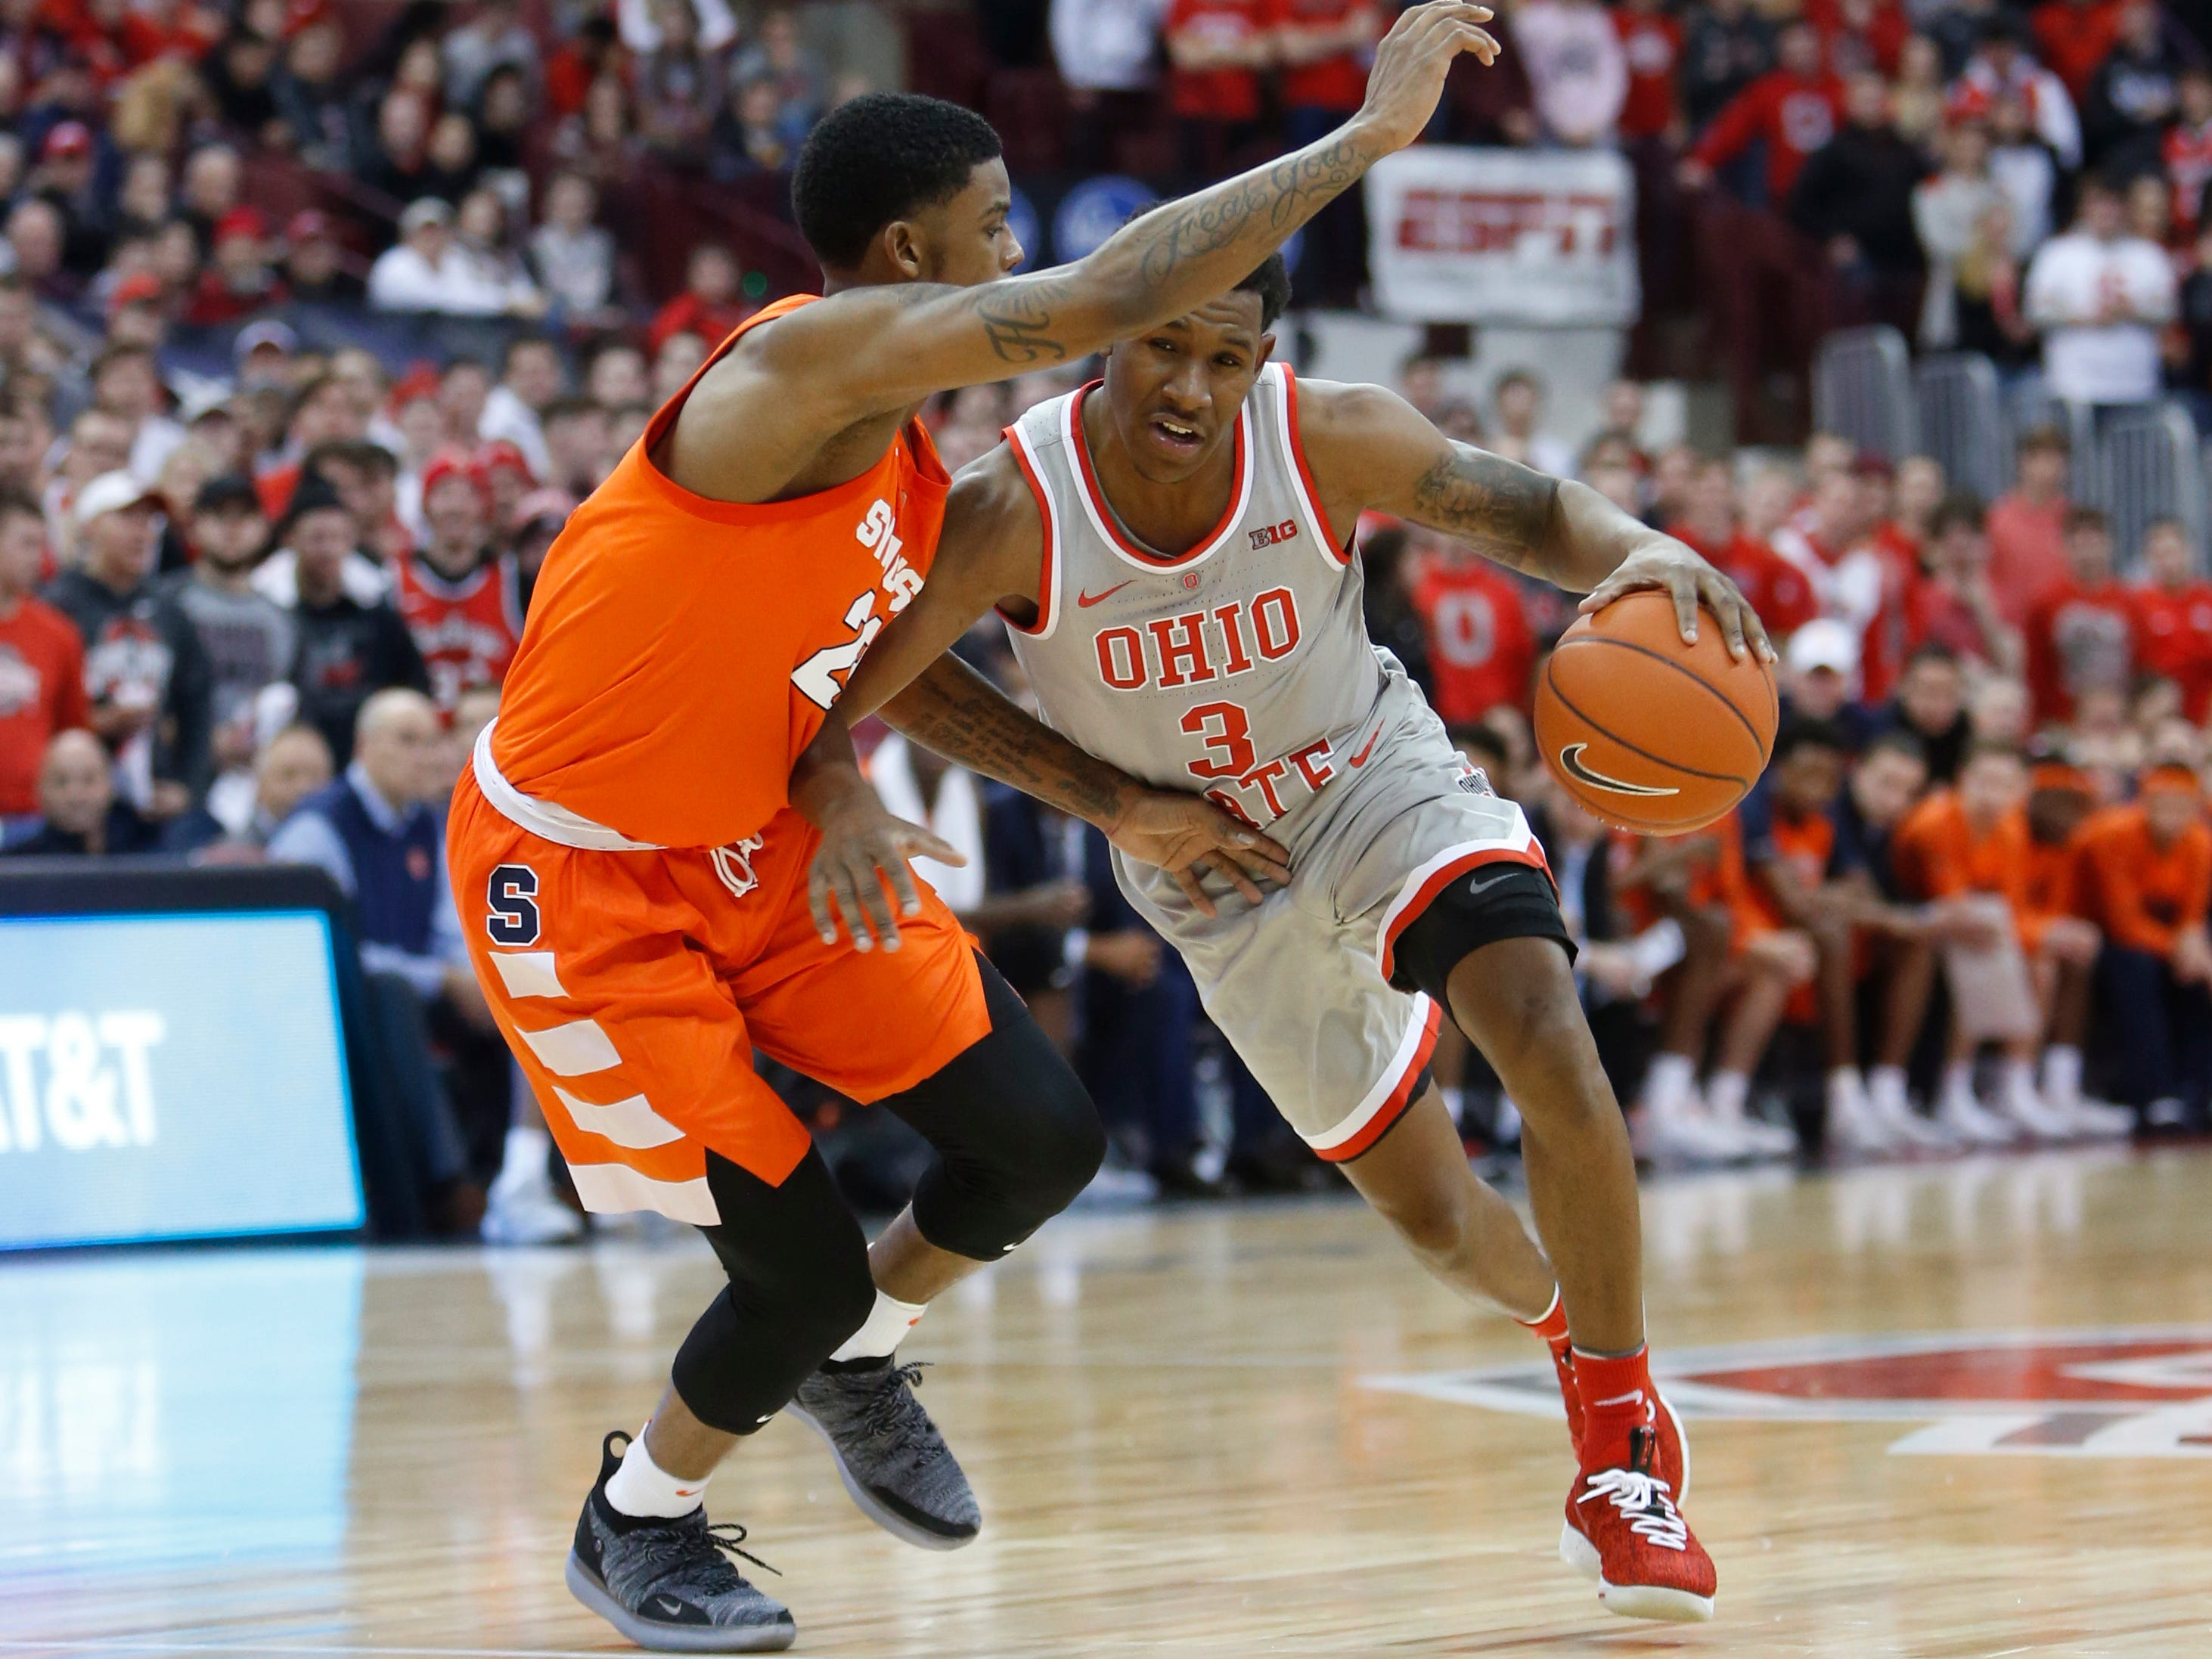 Ohio State's C.J. Jackson, right, drives to the basket against Syracuse's Frank Howard during the second half of an NCAA college basketball game Wednesday, Nov. 28, 2018, in Columbus, Ohio. Syracuse defeated Ohio State 72-62. (AP Photo/Jay LaPrete)